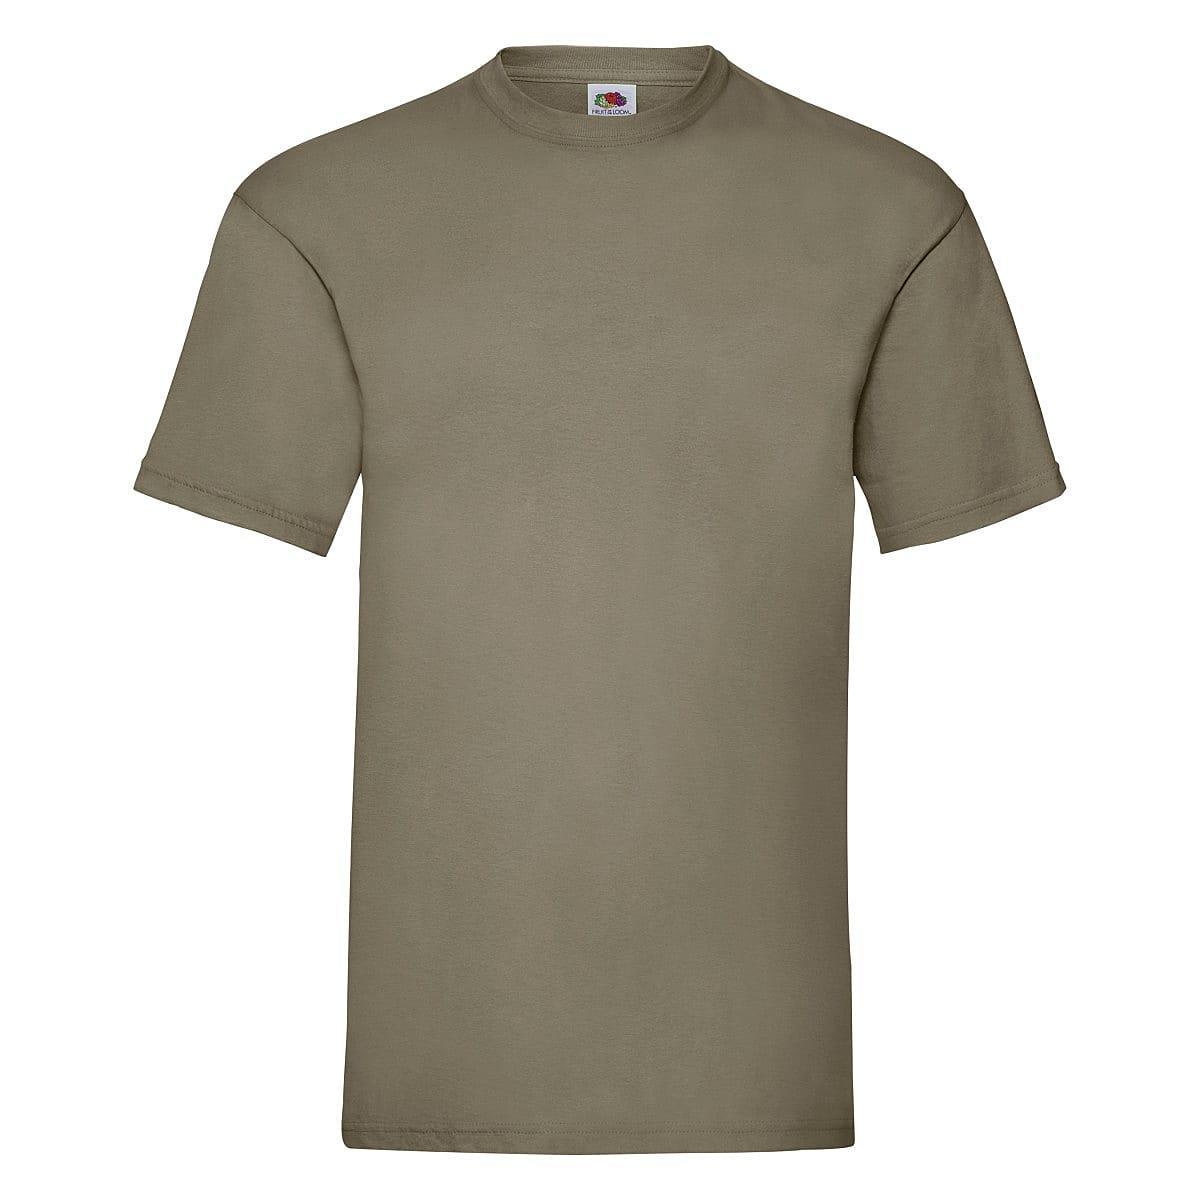 Fruit Of The Loom Valueweight T-Shirt in Khaki (Product Code: 61036)